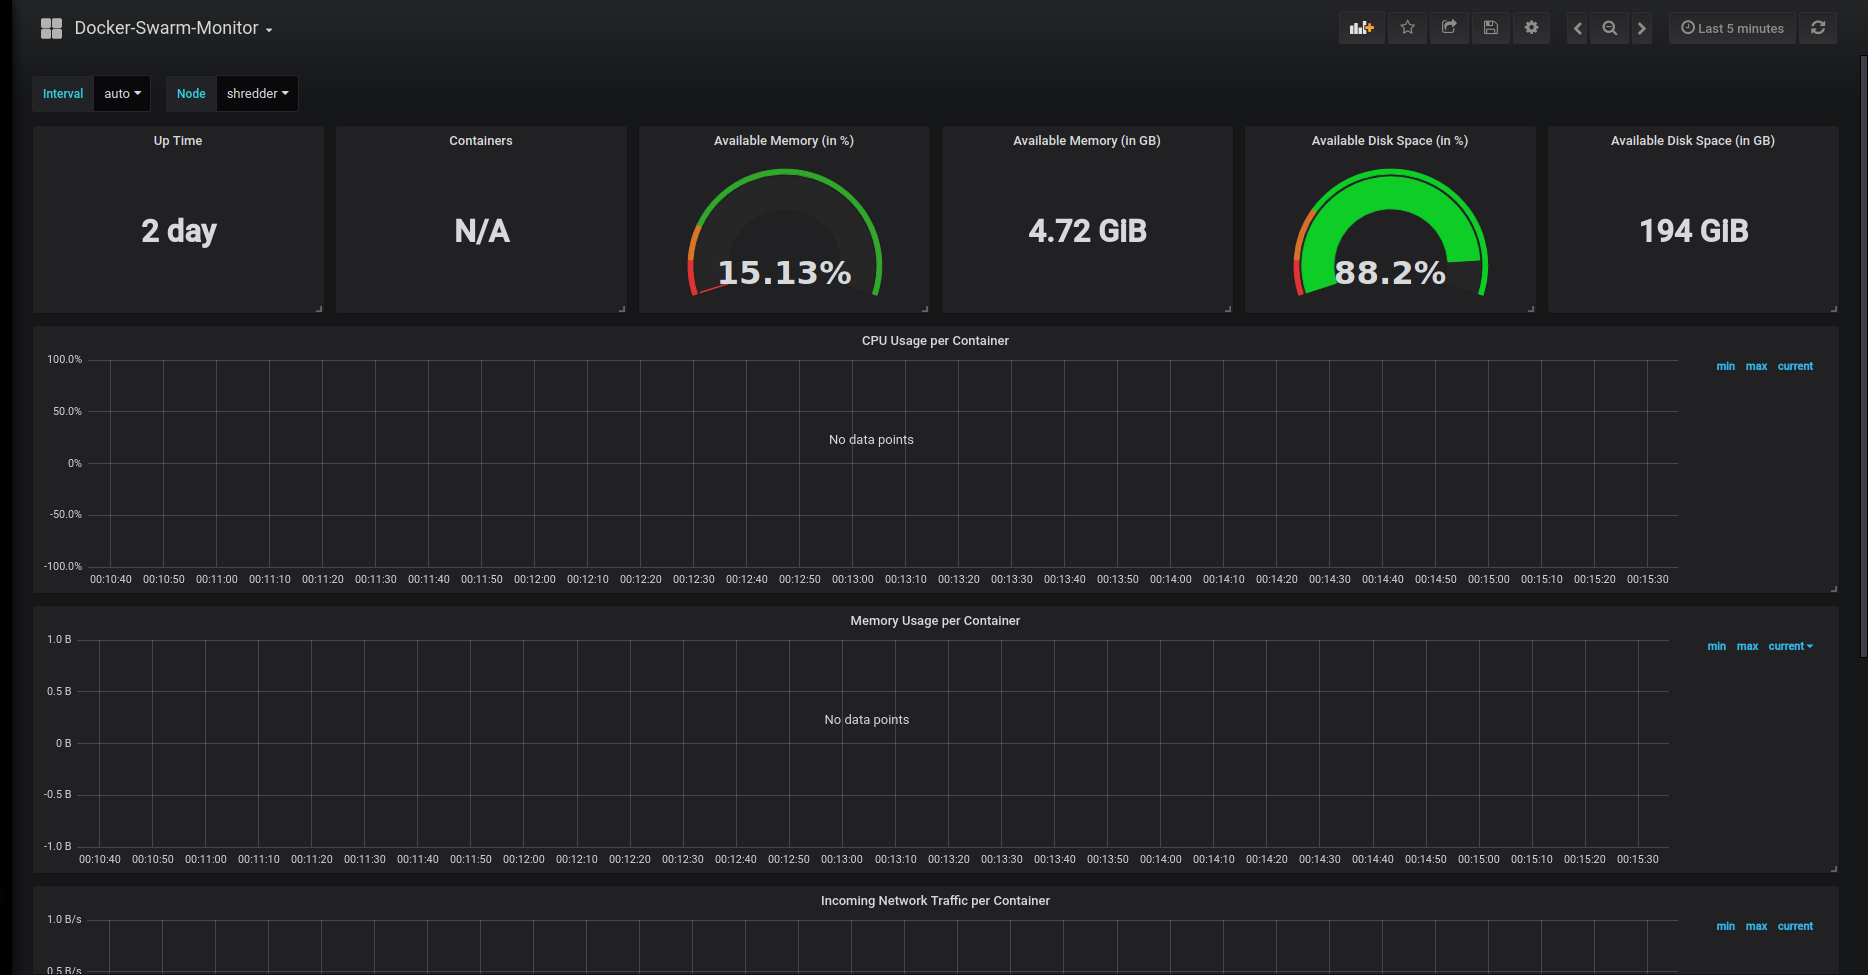 grafana_docker_swarm_dashboard_before.png